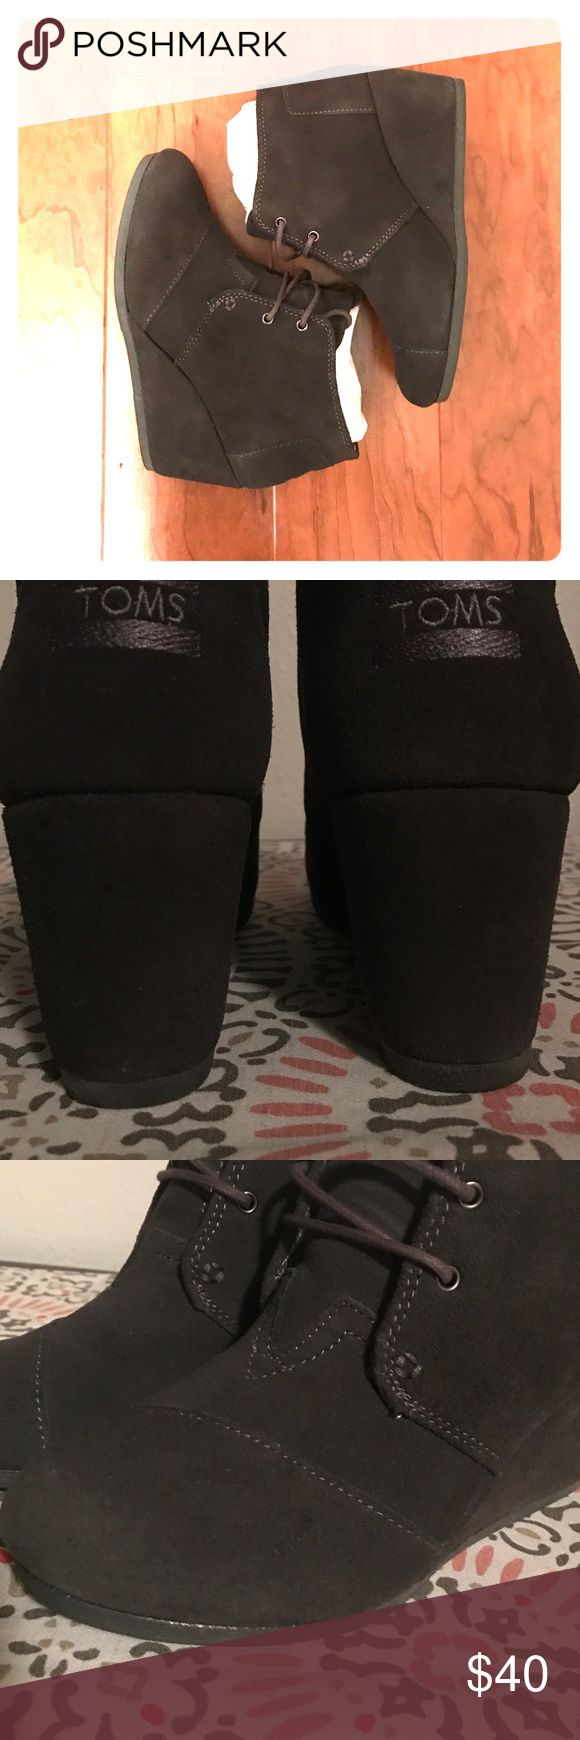 Toms Desert Wedge Booties Castlerock Grey 7M Lovingly worn a few times, but still in excellent condition. There is very light evidence of wear on them, but I tried to picture the one spot that could be pointed out as a flaw. They come with the original box. TOMS Shoes Ankle Boots & Booties